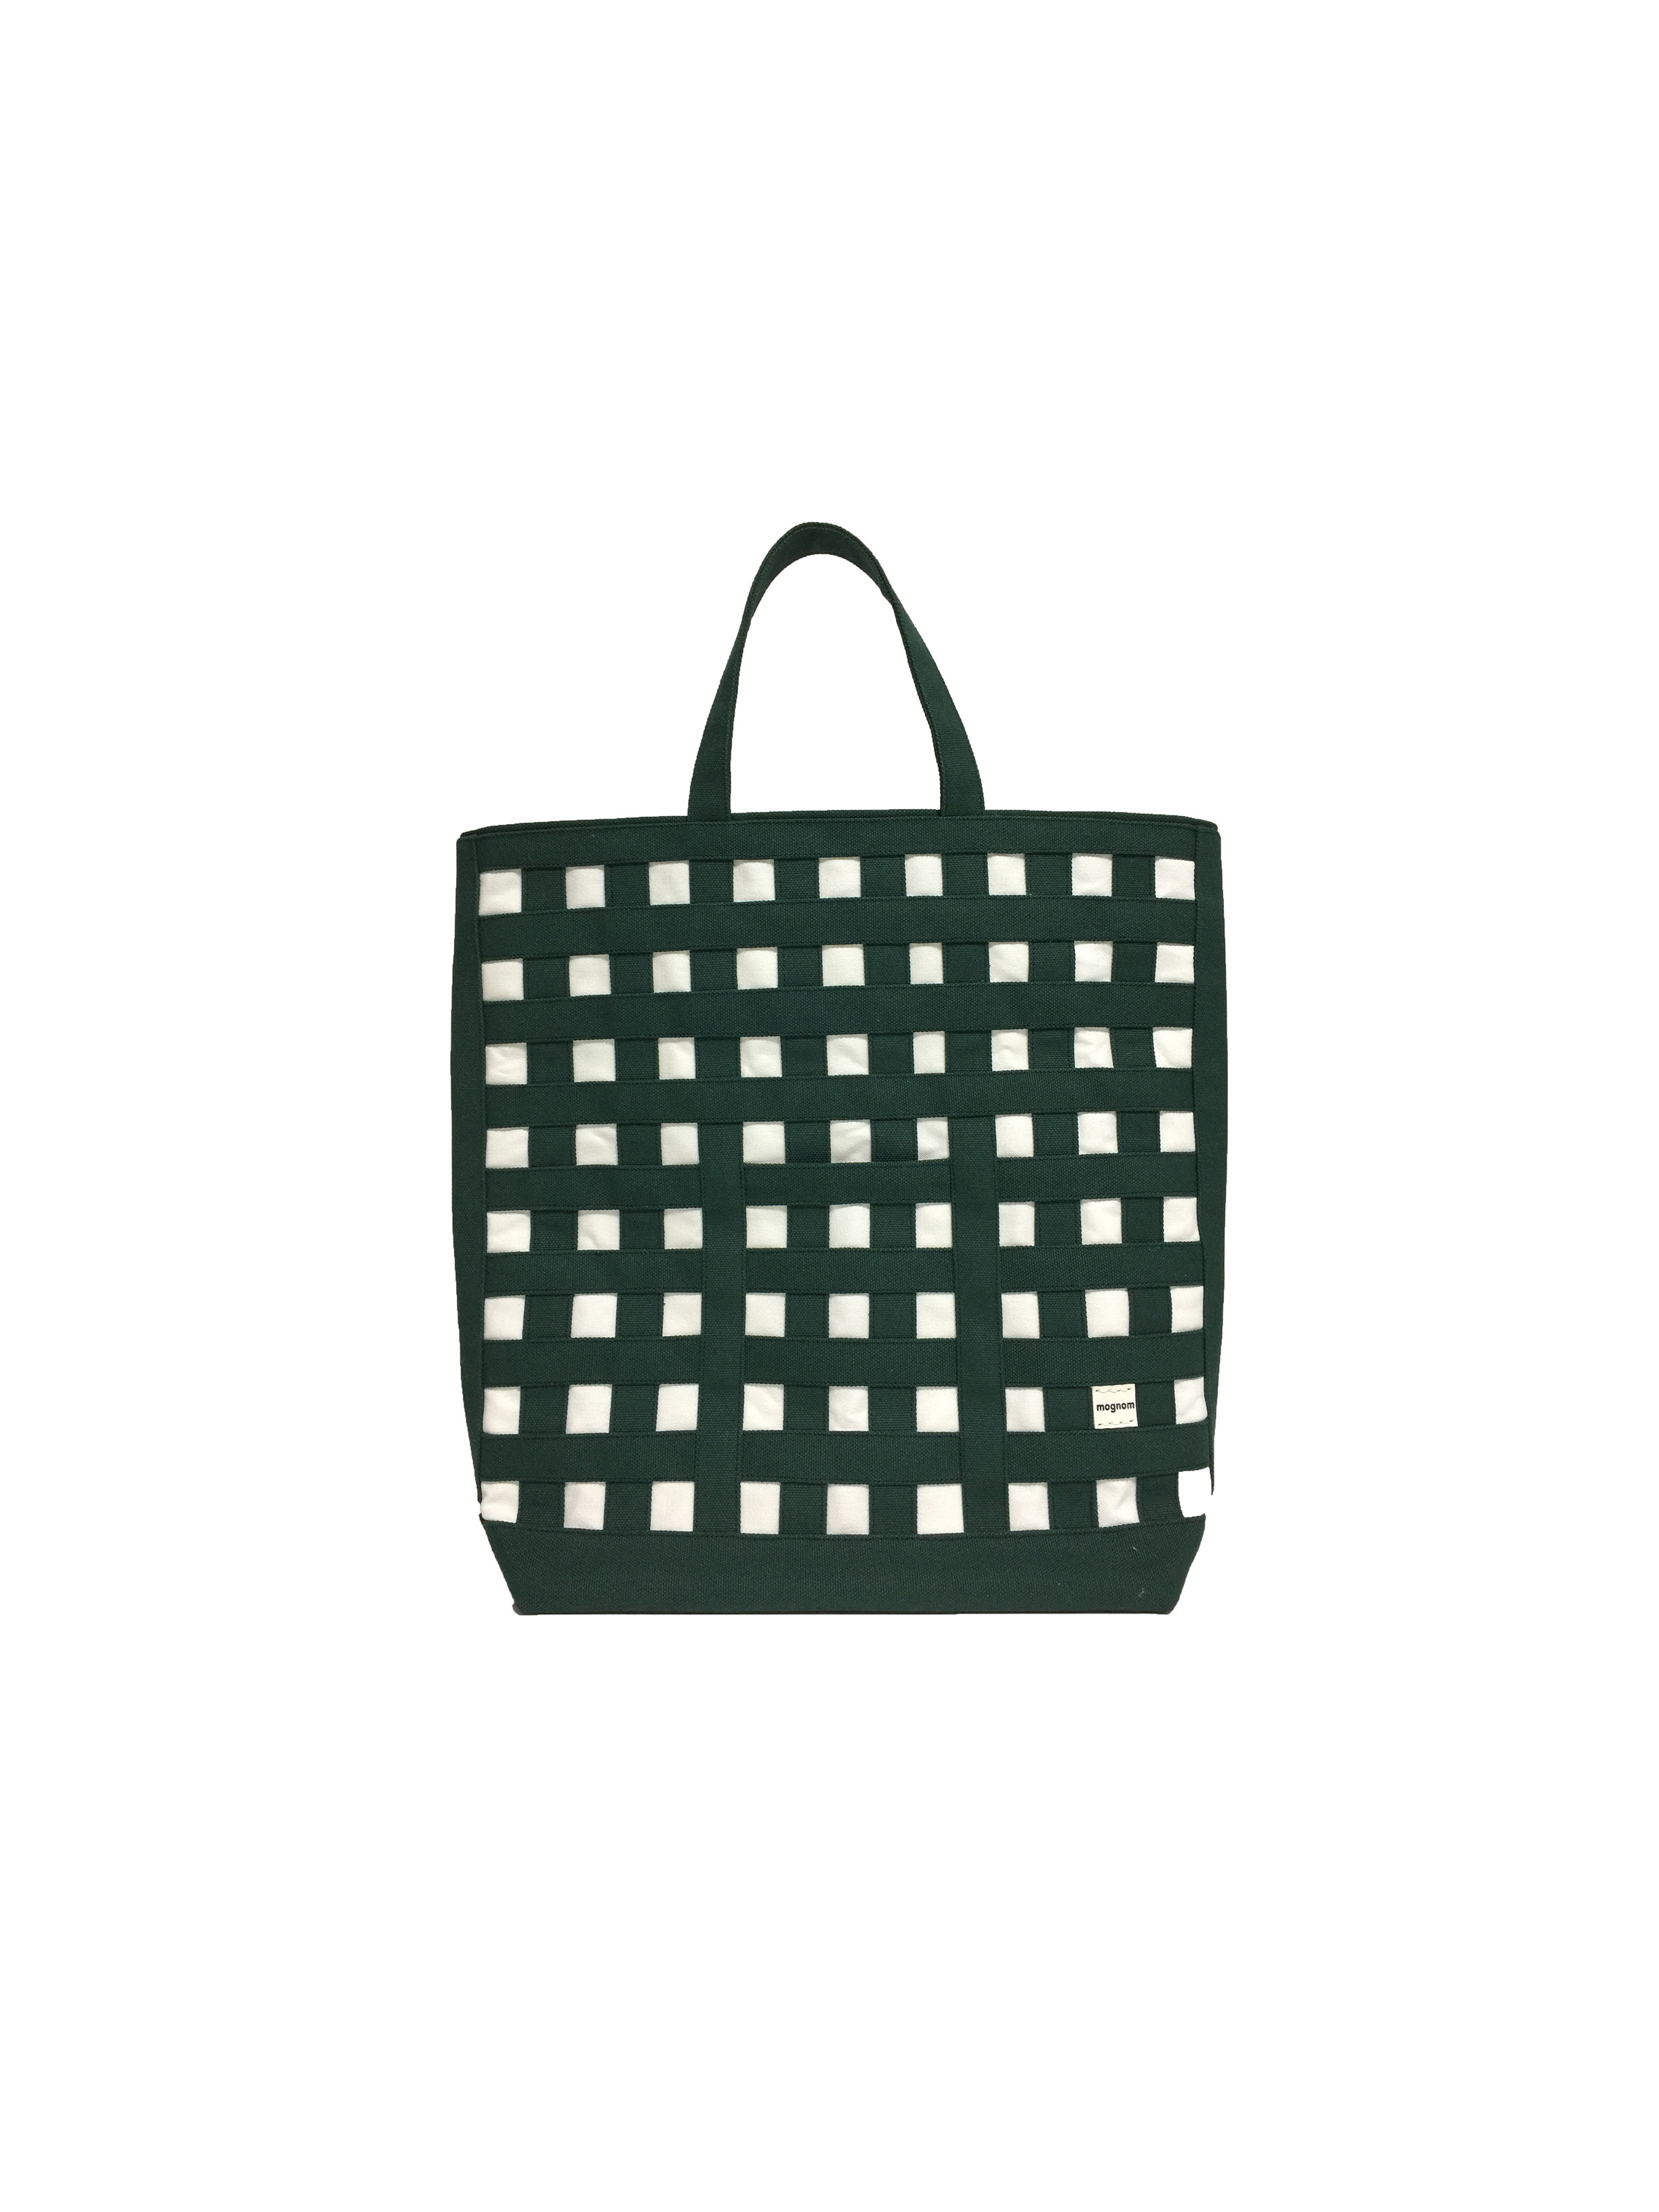 gingham tote ギンガムトート 20 ダークグリーン